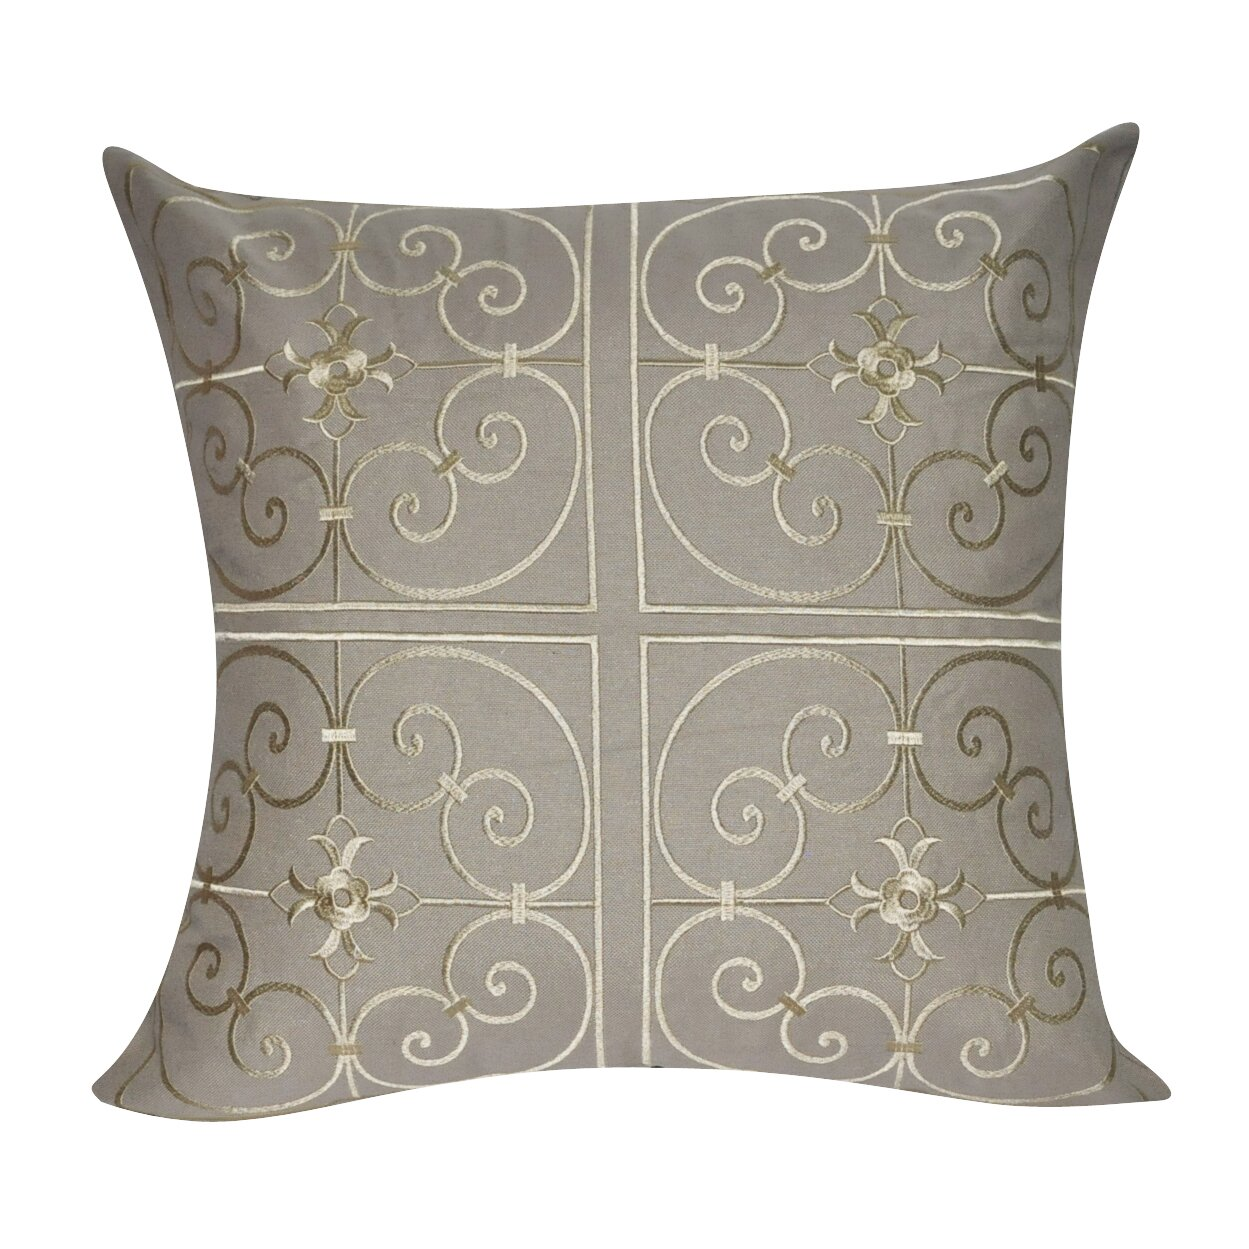 Decorative Pillow Wayfair : Loom and Mill Floral Embroidered Decorative Throw Pillow & Reviews Wayfair